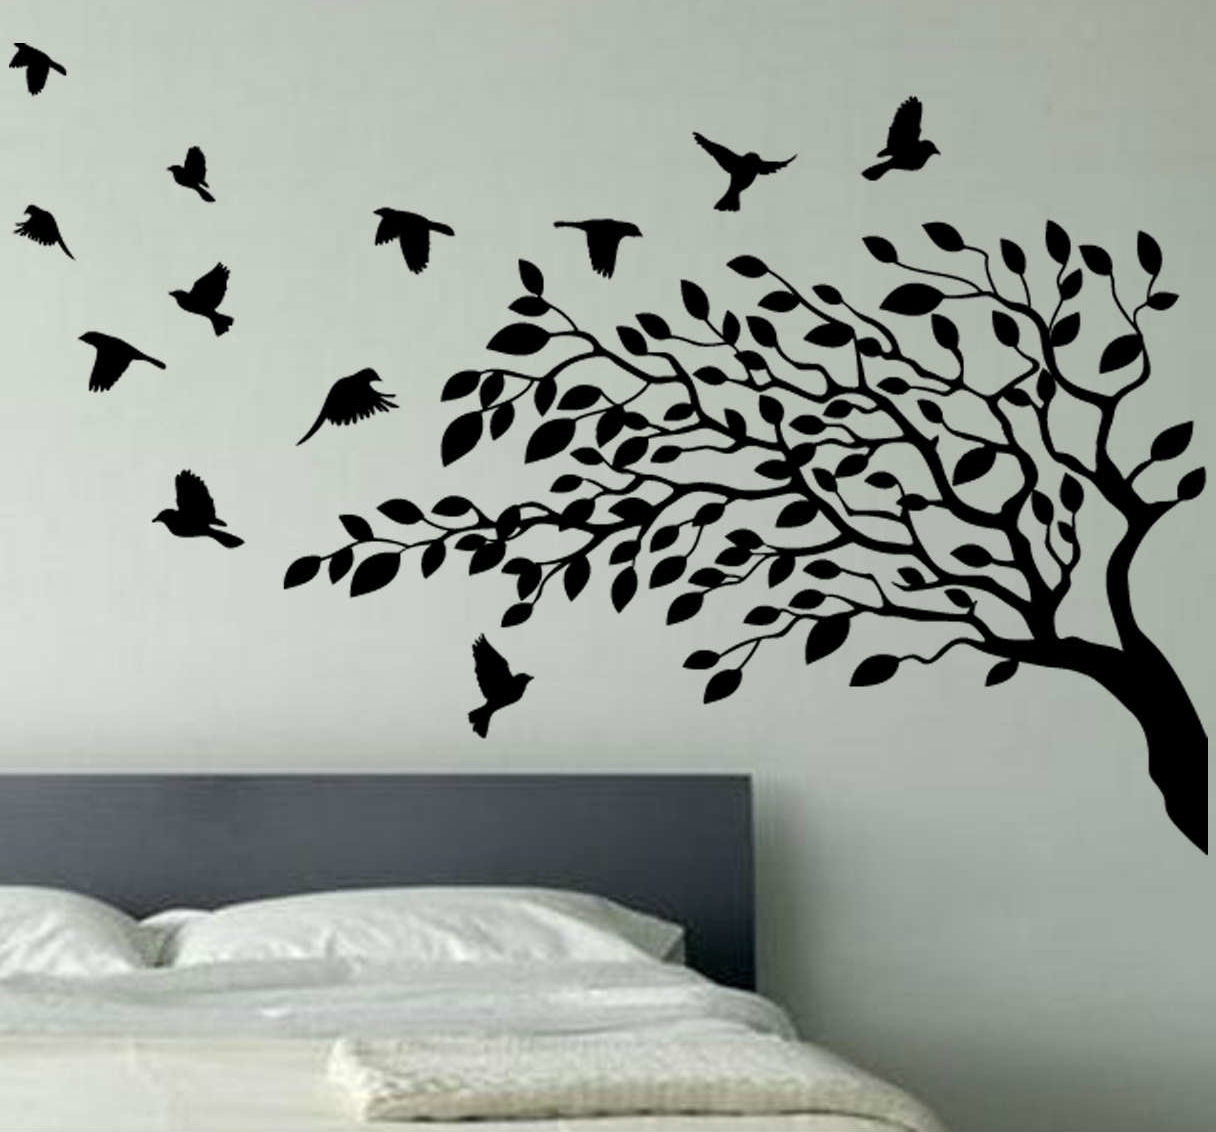 Vinyl Wall Art Tree Intended For Famous Wallpaper Wall Decals Stickers Art Vinyl Removable Birdcage Bird (View 12 of 15)